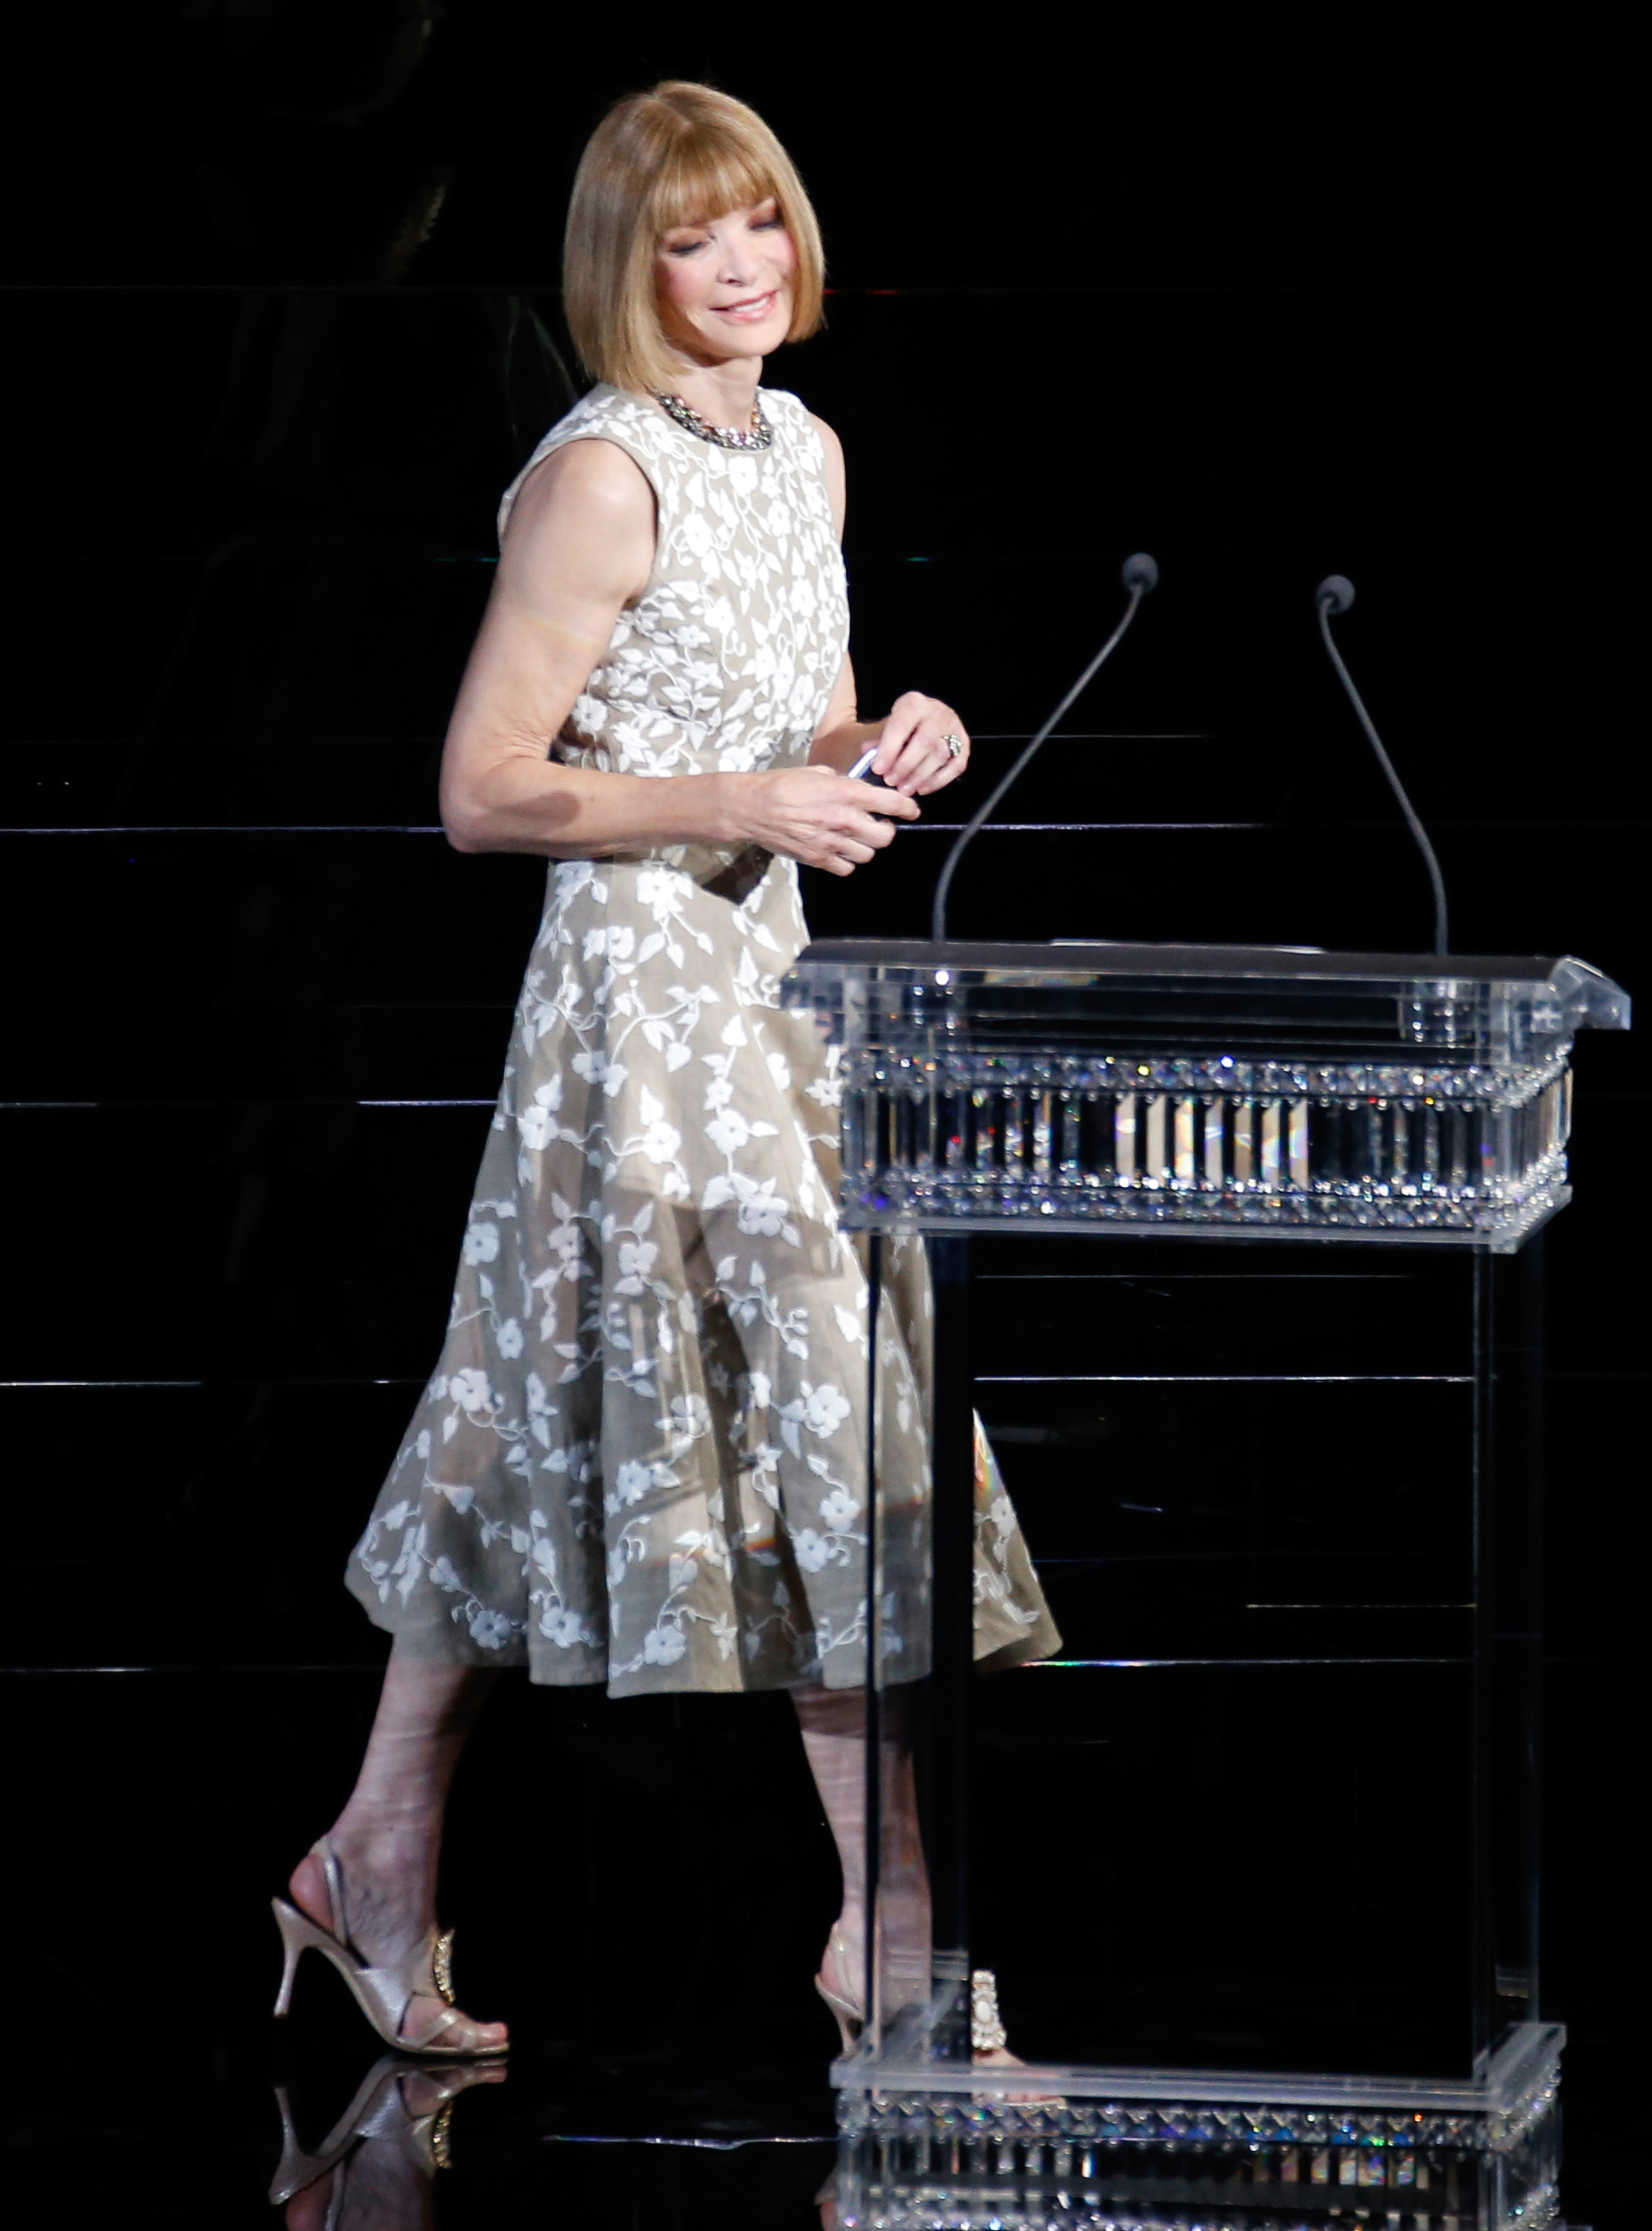 2014 CFDA Fashion Awards, show, New York, America - 02 Jun 2014